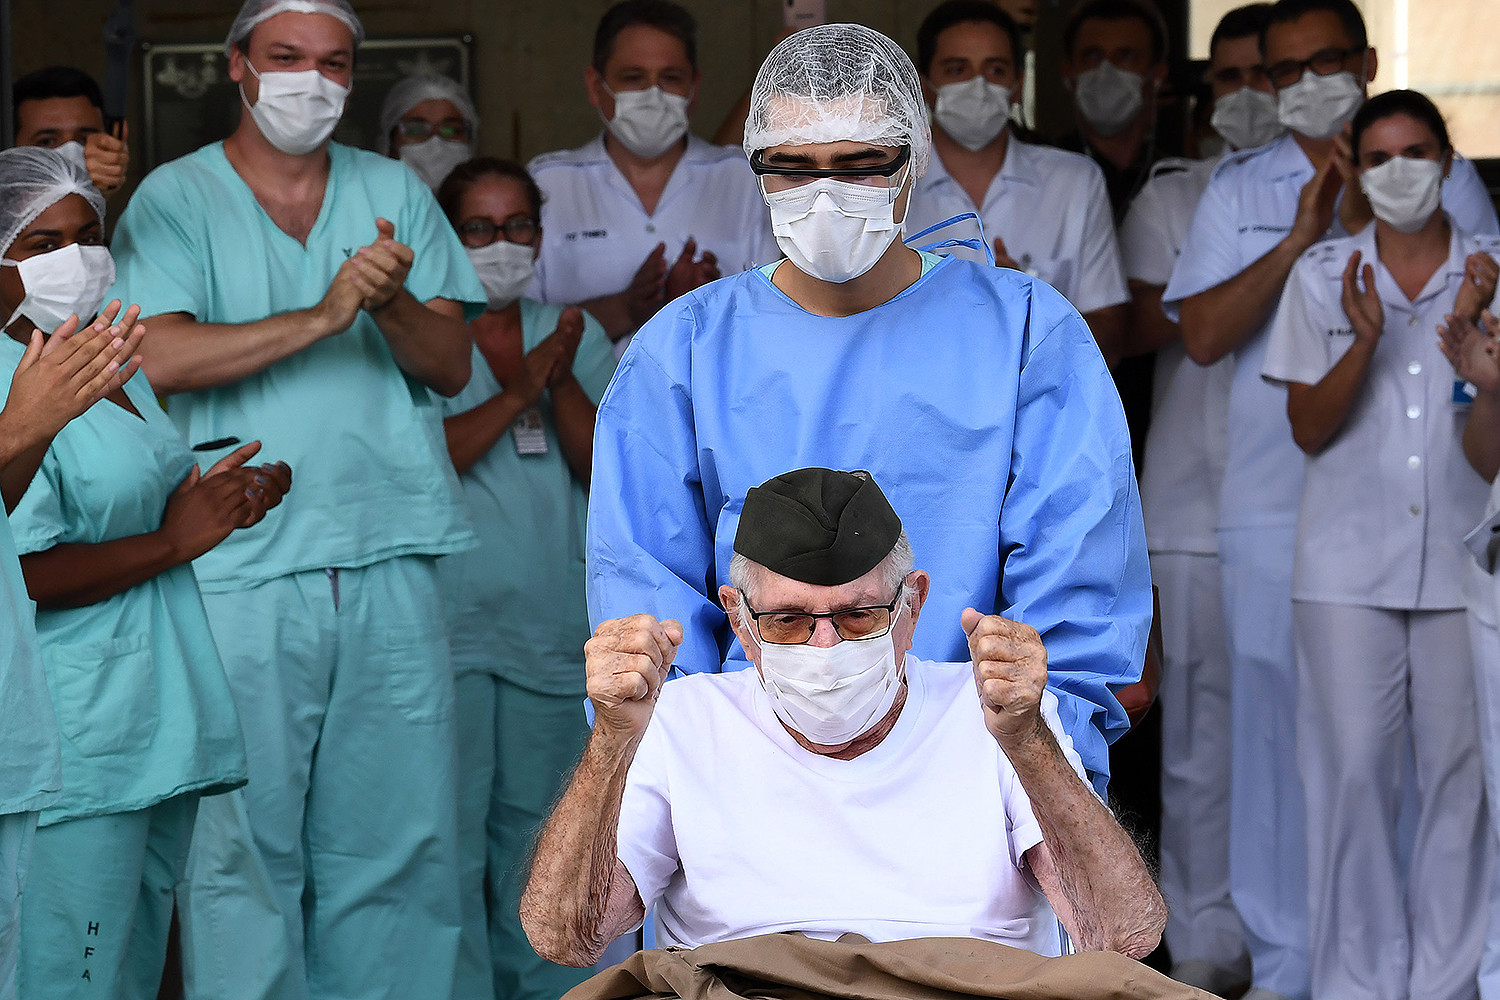 """Brazilian World War II veteran Ermando Armelino Piveta, 99, is discharged from the Armed Forces Hospital in Brasilia on April 14 after being treated for COVID-19. """"Winning this battle was for me bigger than winning the war,"""" he said. EVARISTO SA/AFP via Getty Images"""